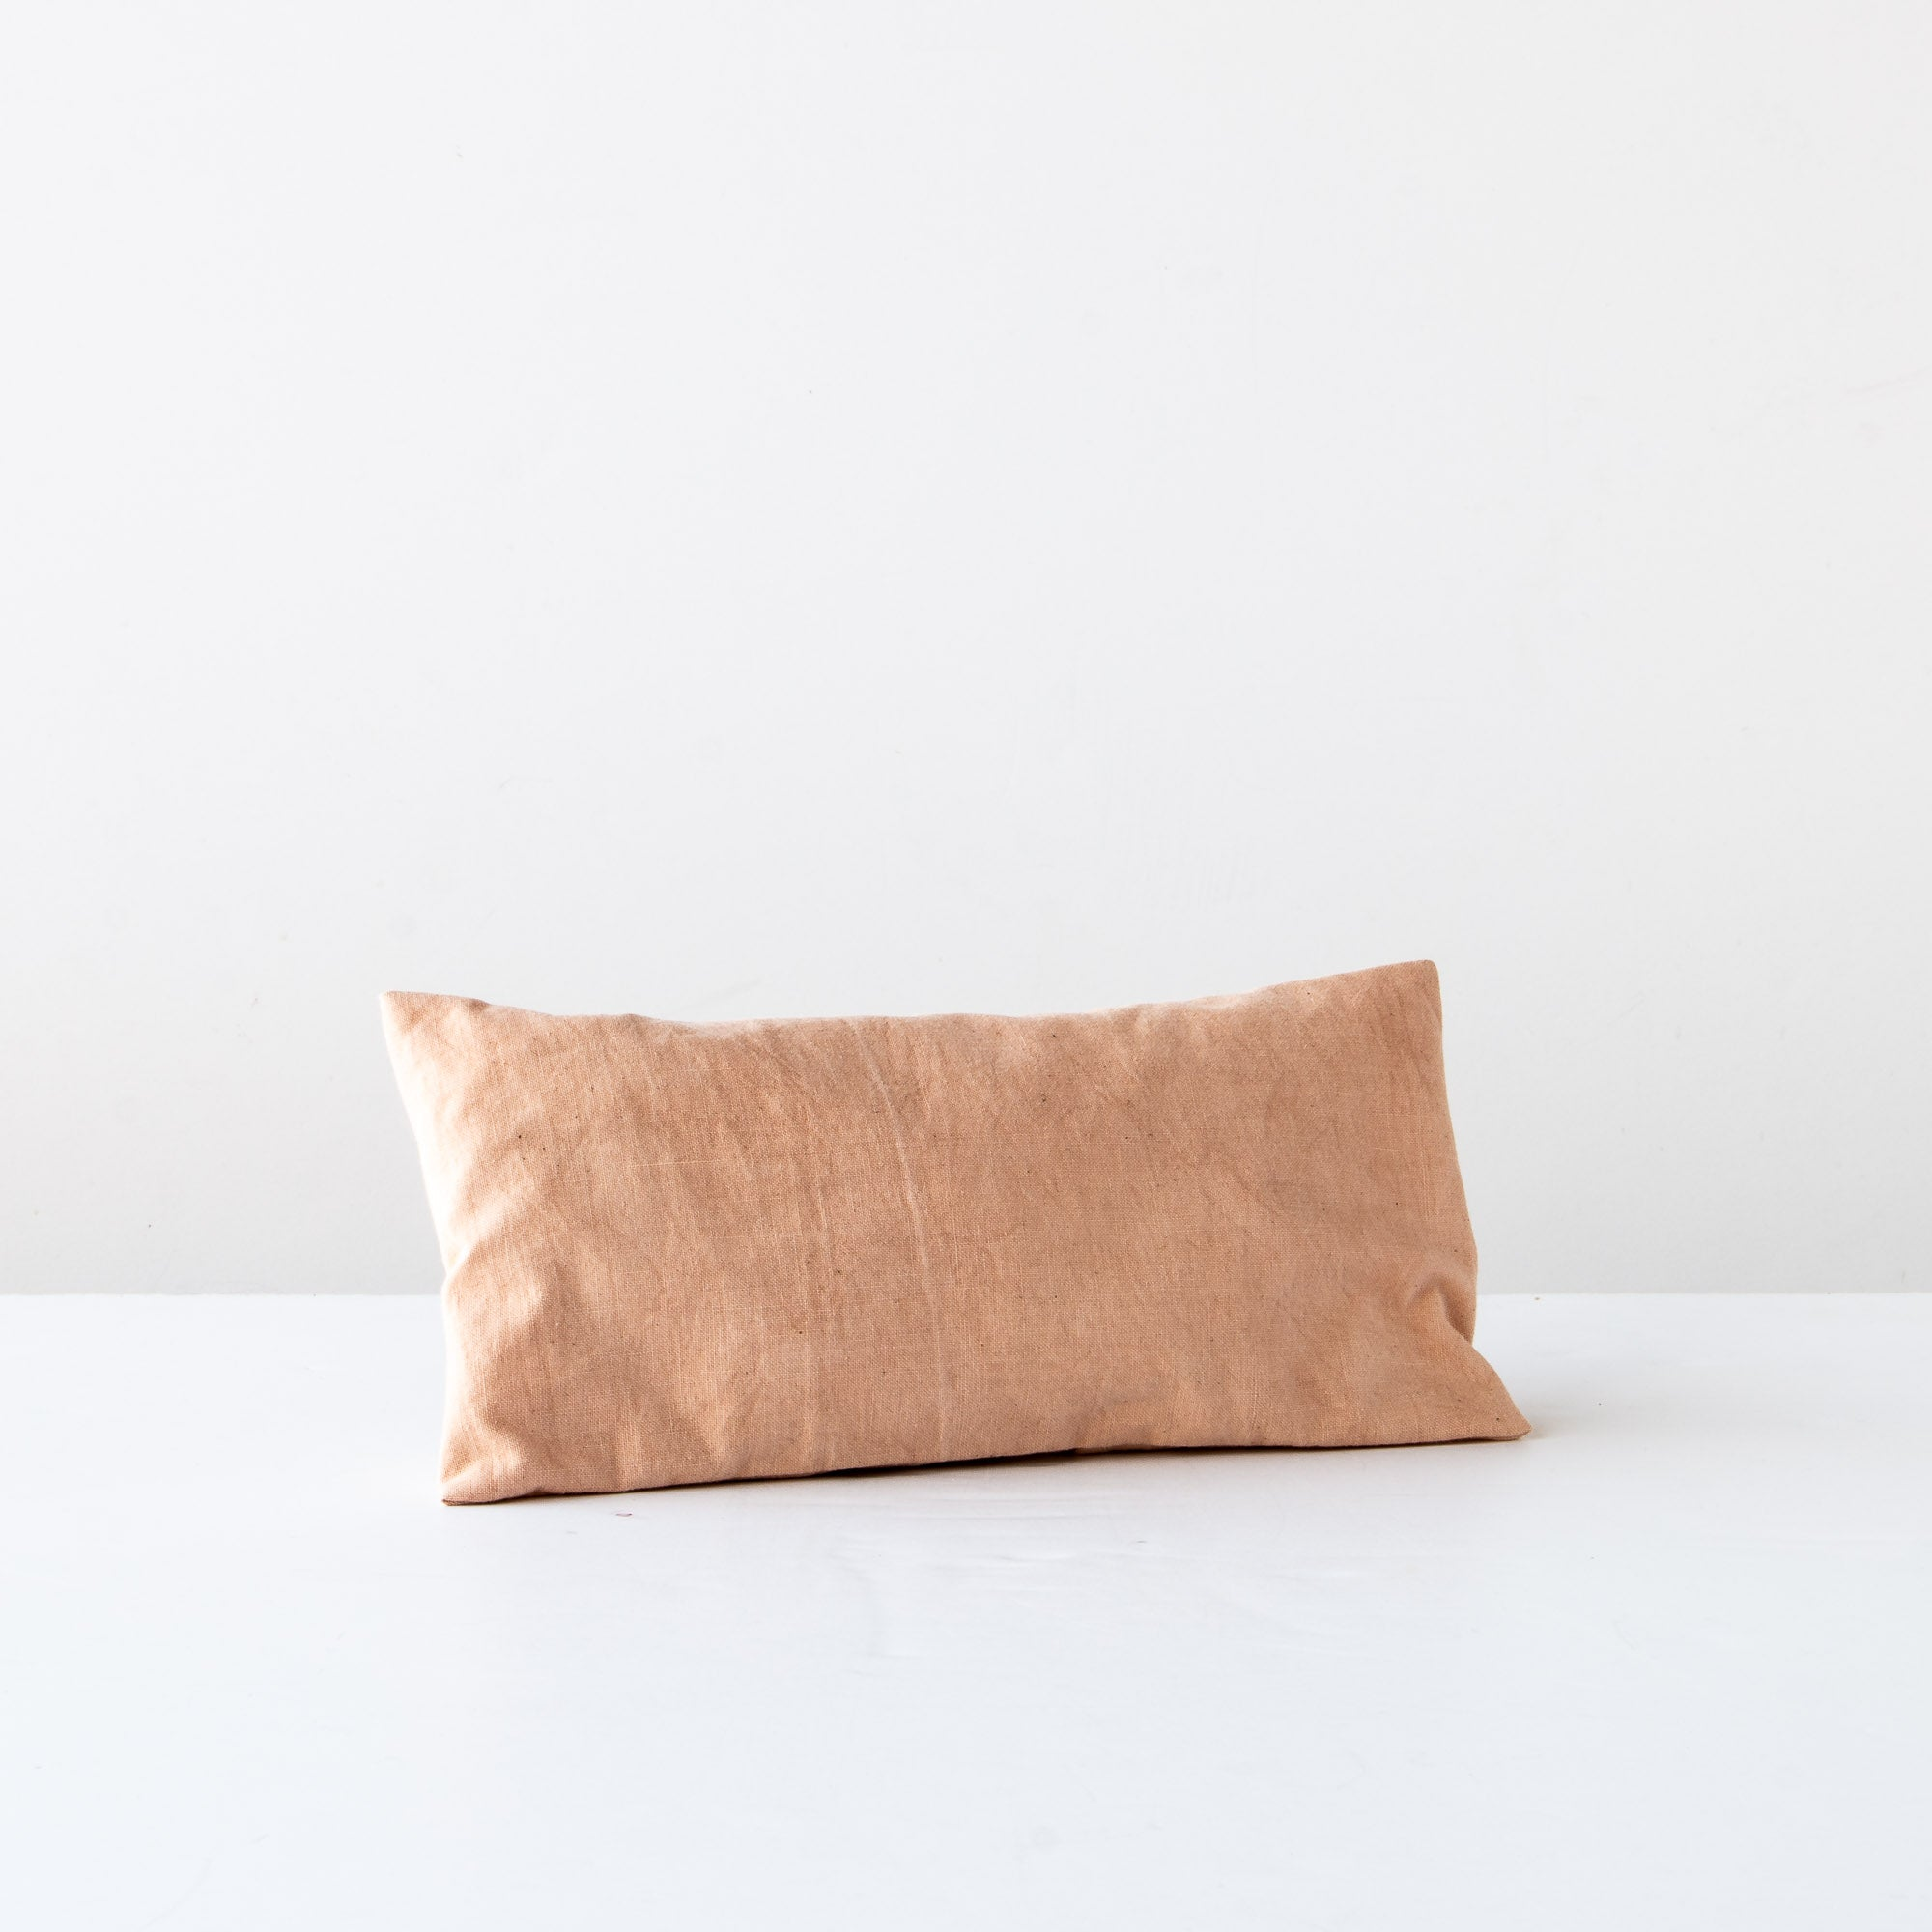 Old Pink - Organic Cotton Lavender Aromatherapy Eye Cushion - Sold by Chic & Basta